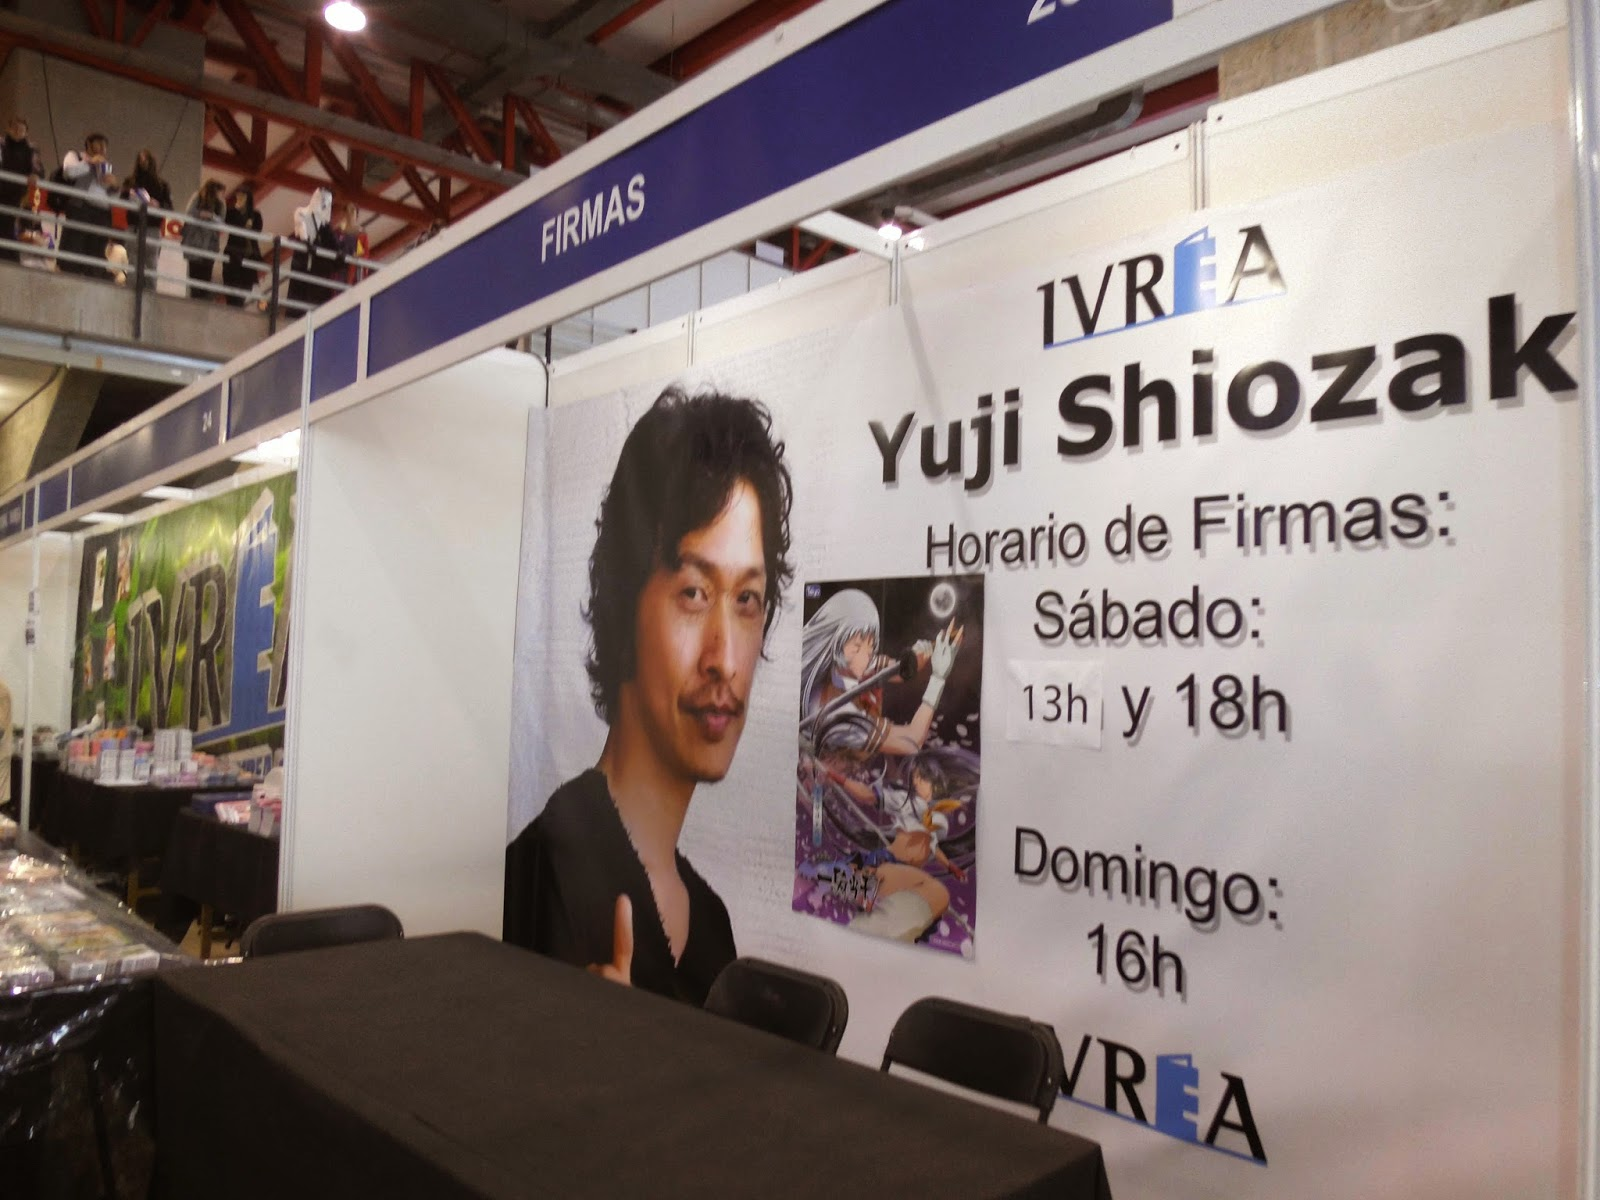 Yuji Shiozak firma japan weekend